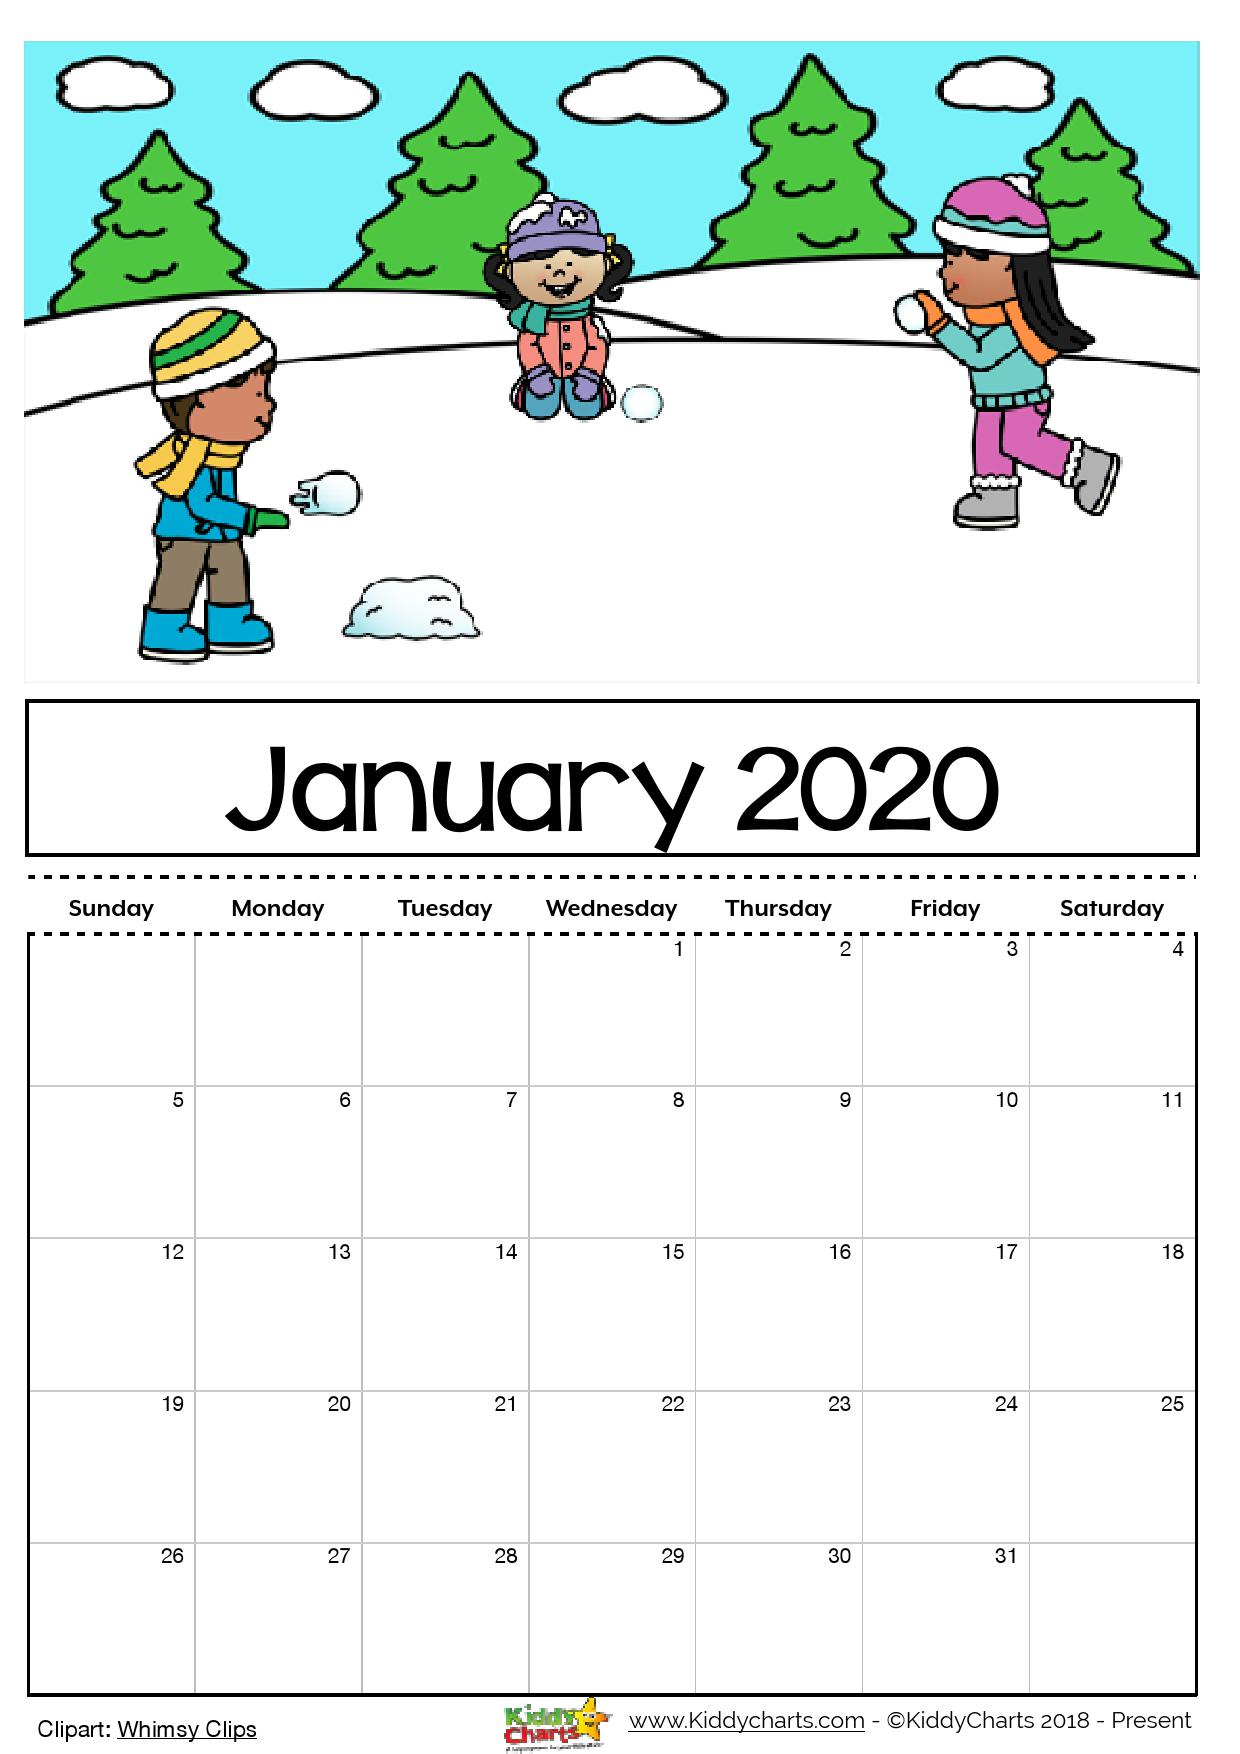 Free Printable 2020 Calendar For Kids, Including An Editable